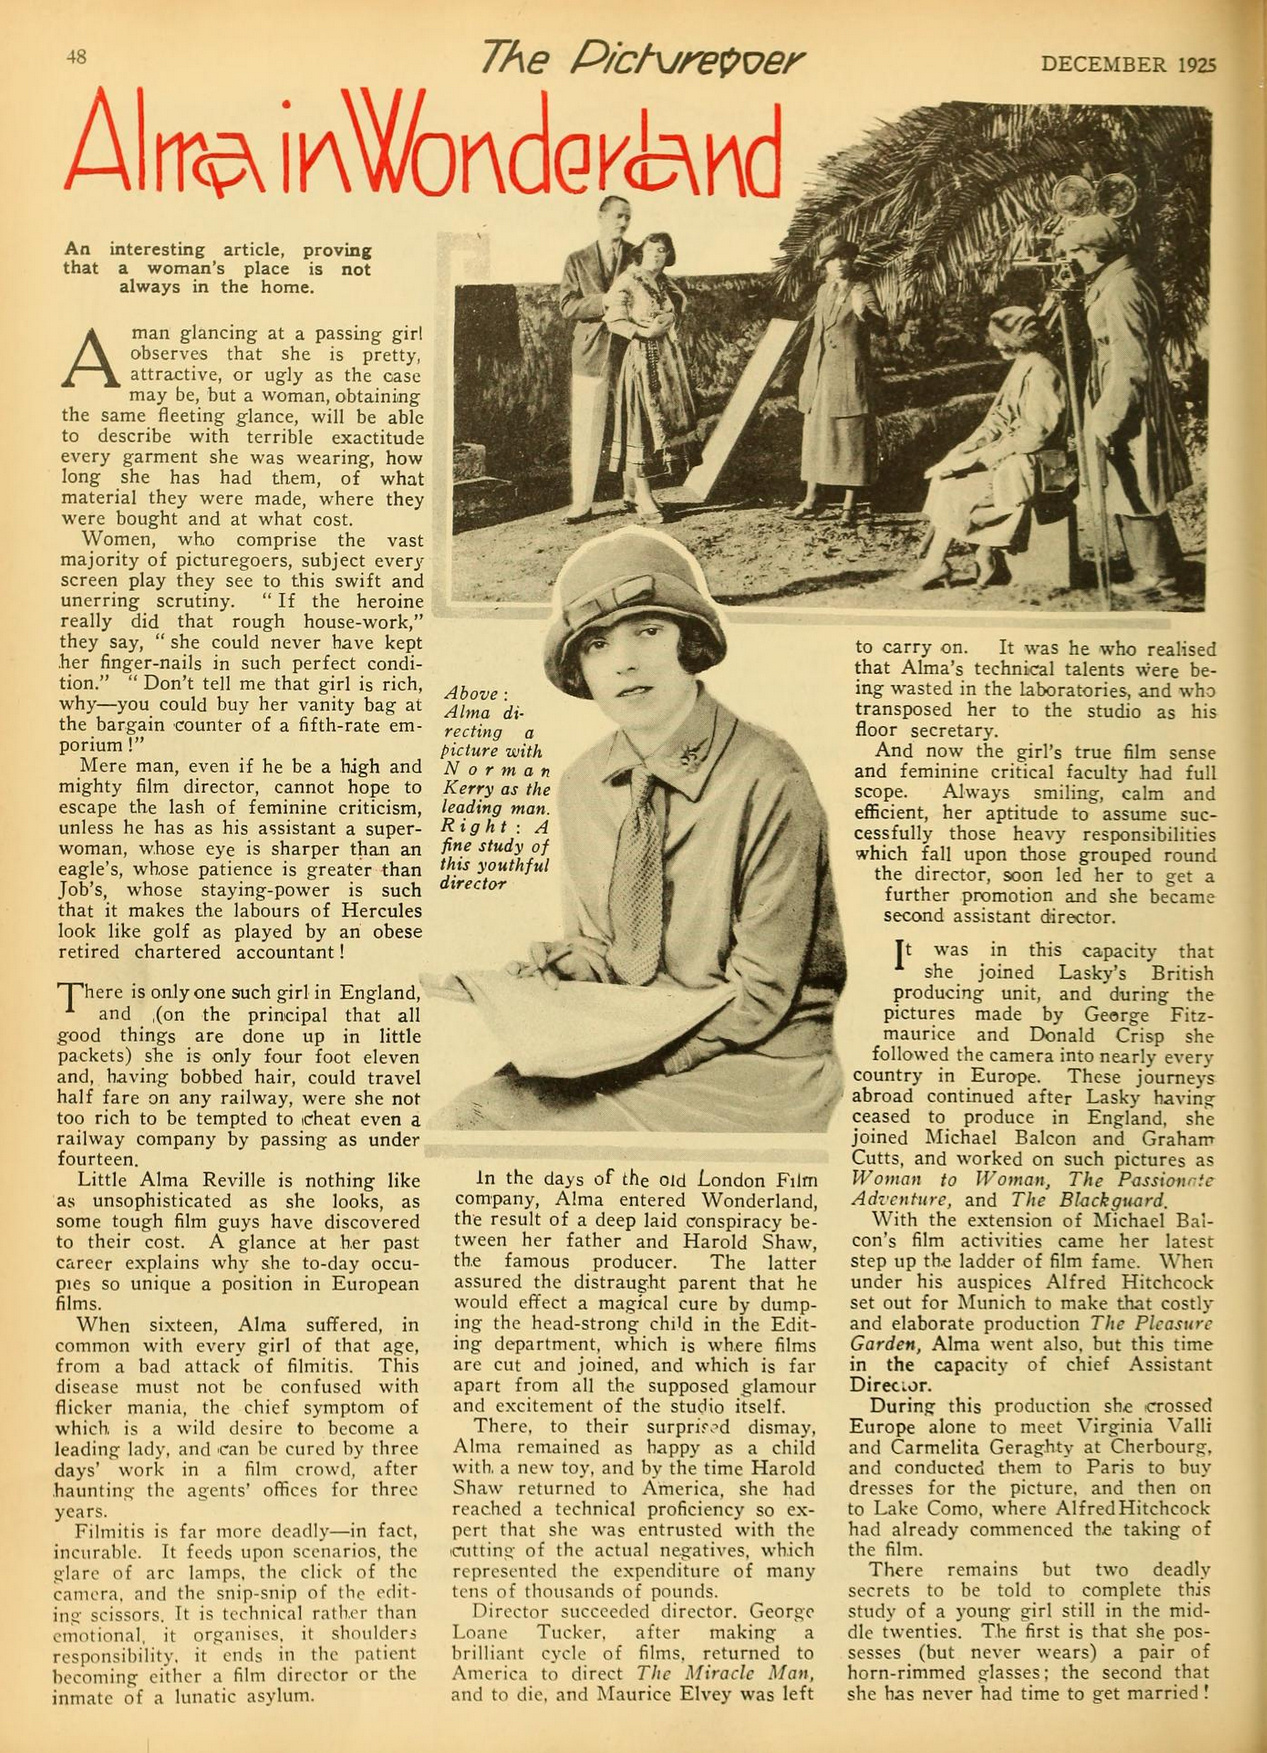 """Alma in Wonderland"" article about Alma Reville, future wife of Alfred Hitchcock, from The Picturegoer magazine, December 1925"